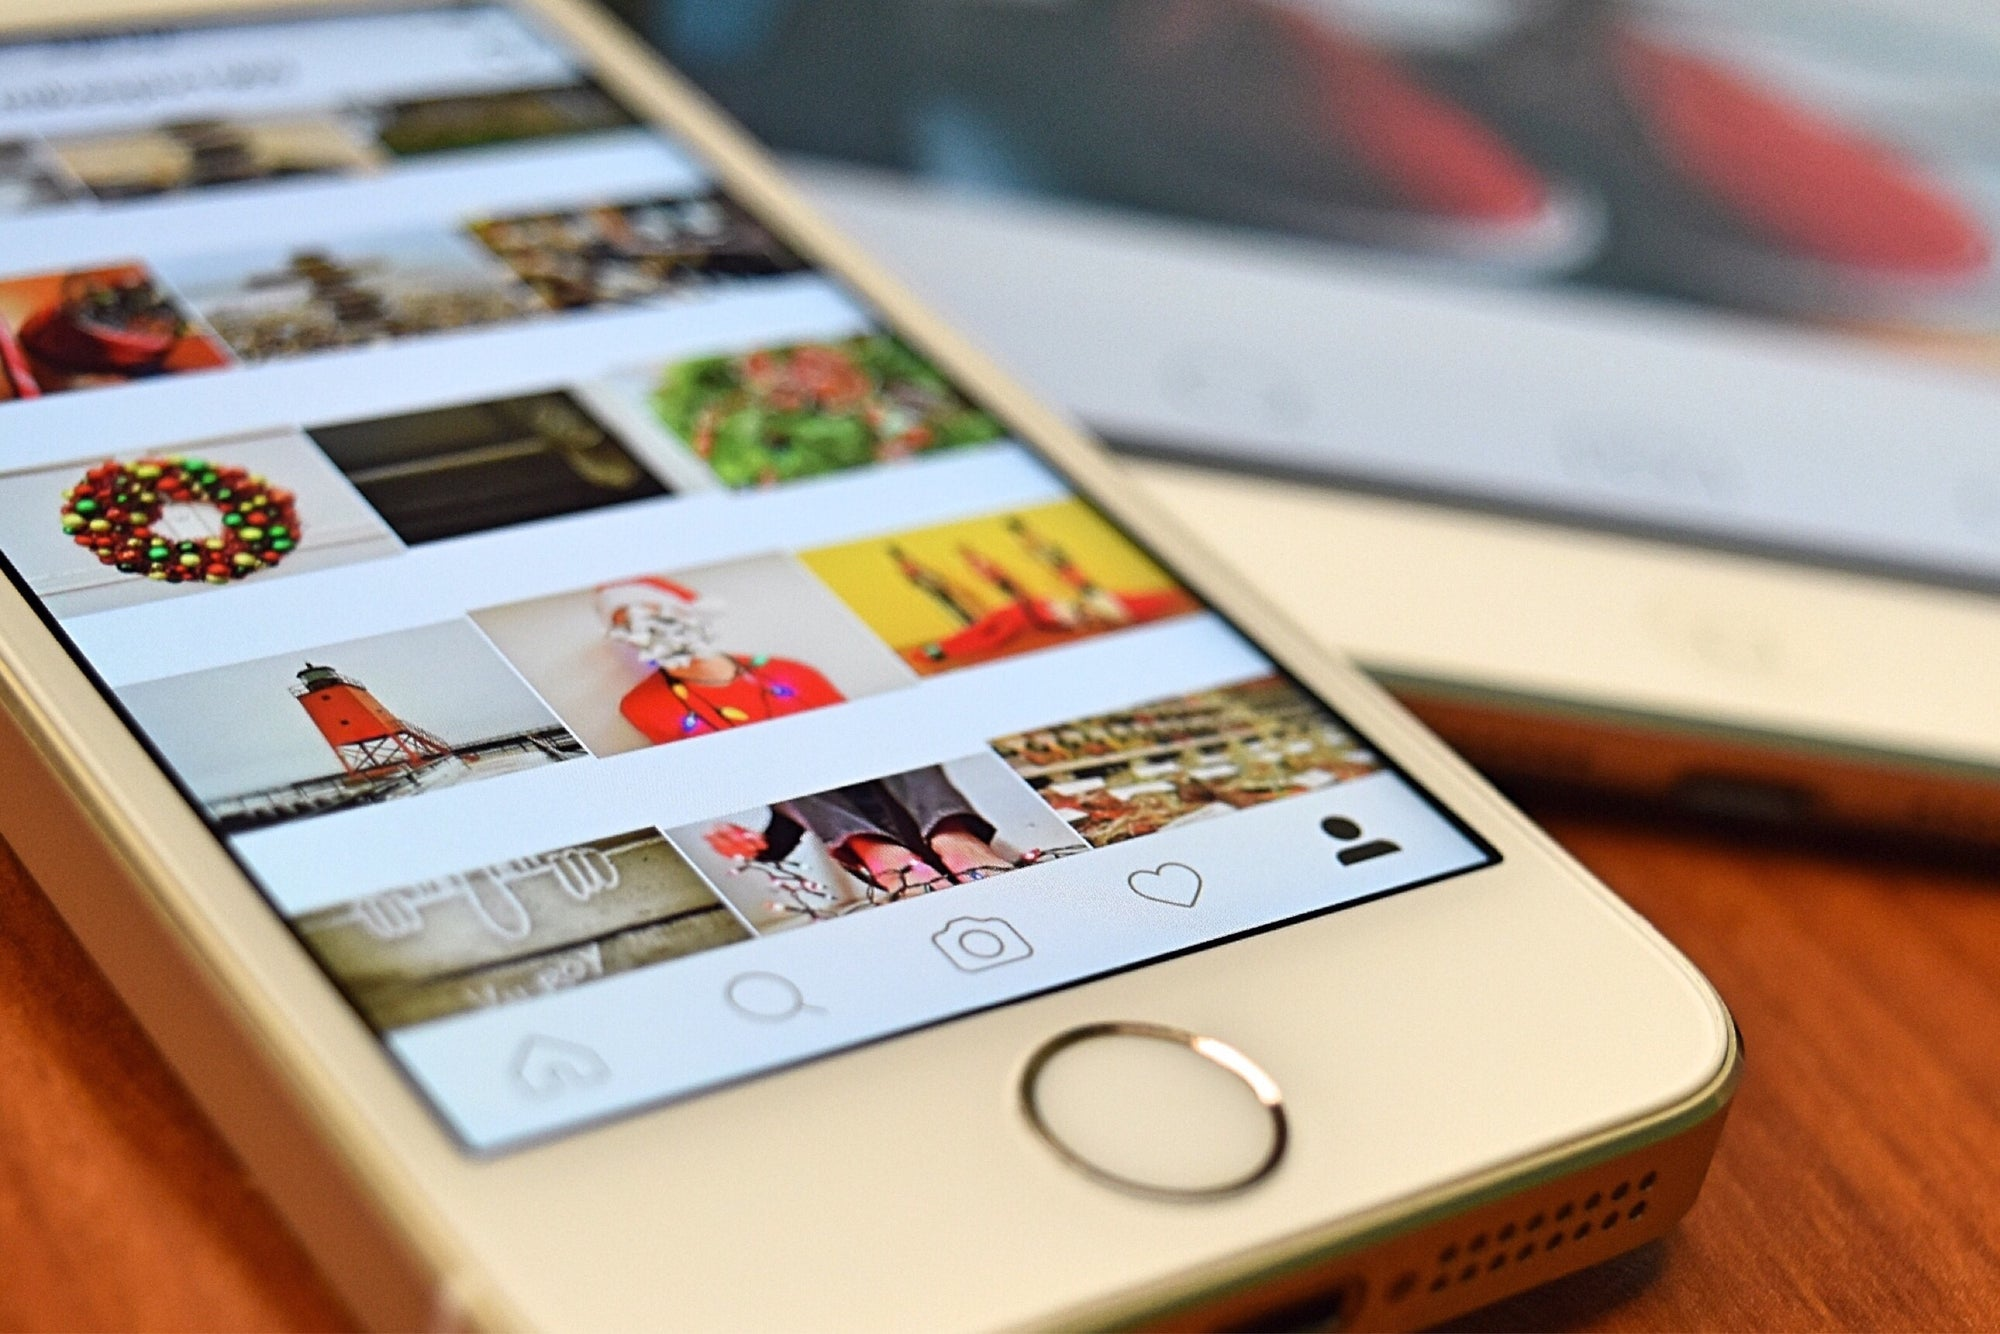 Add an instagram (App) feed